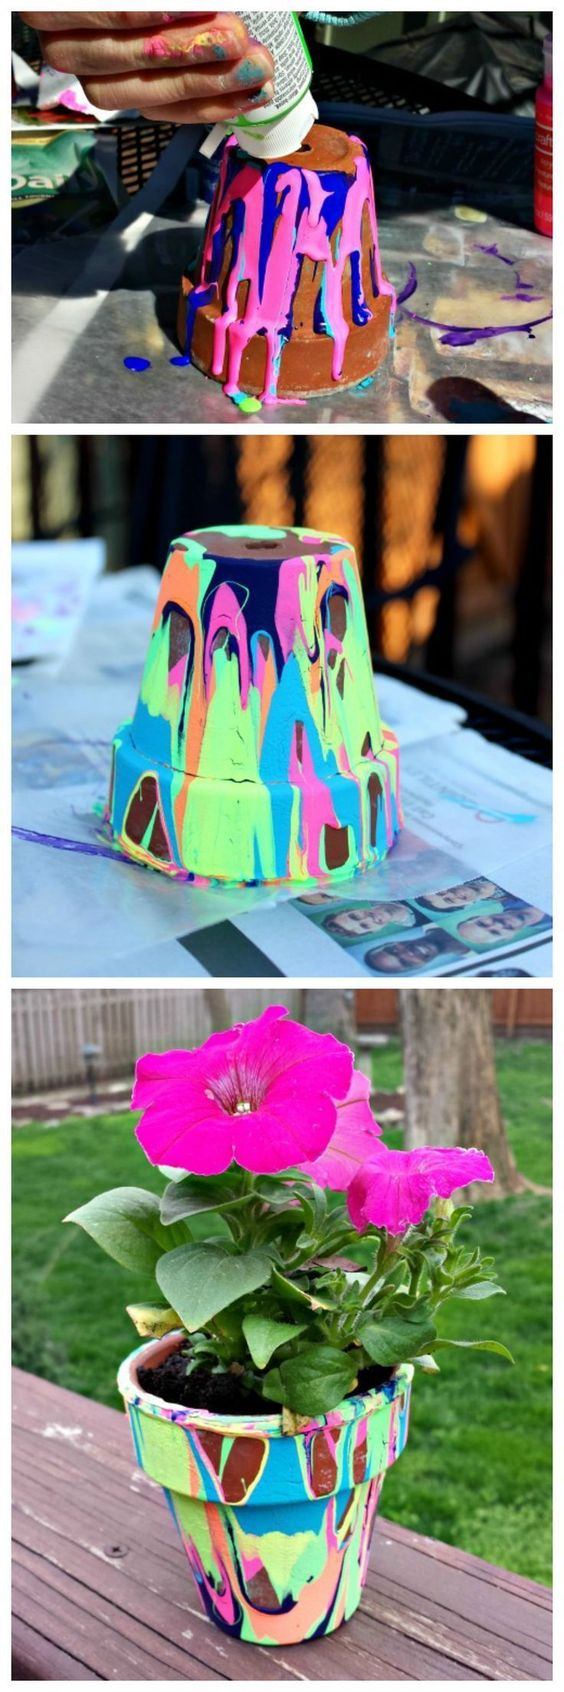 Teacher gifts, Pots and Mother's day on Pinterest